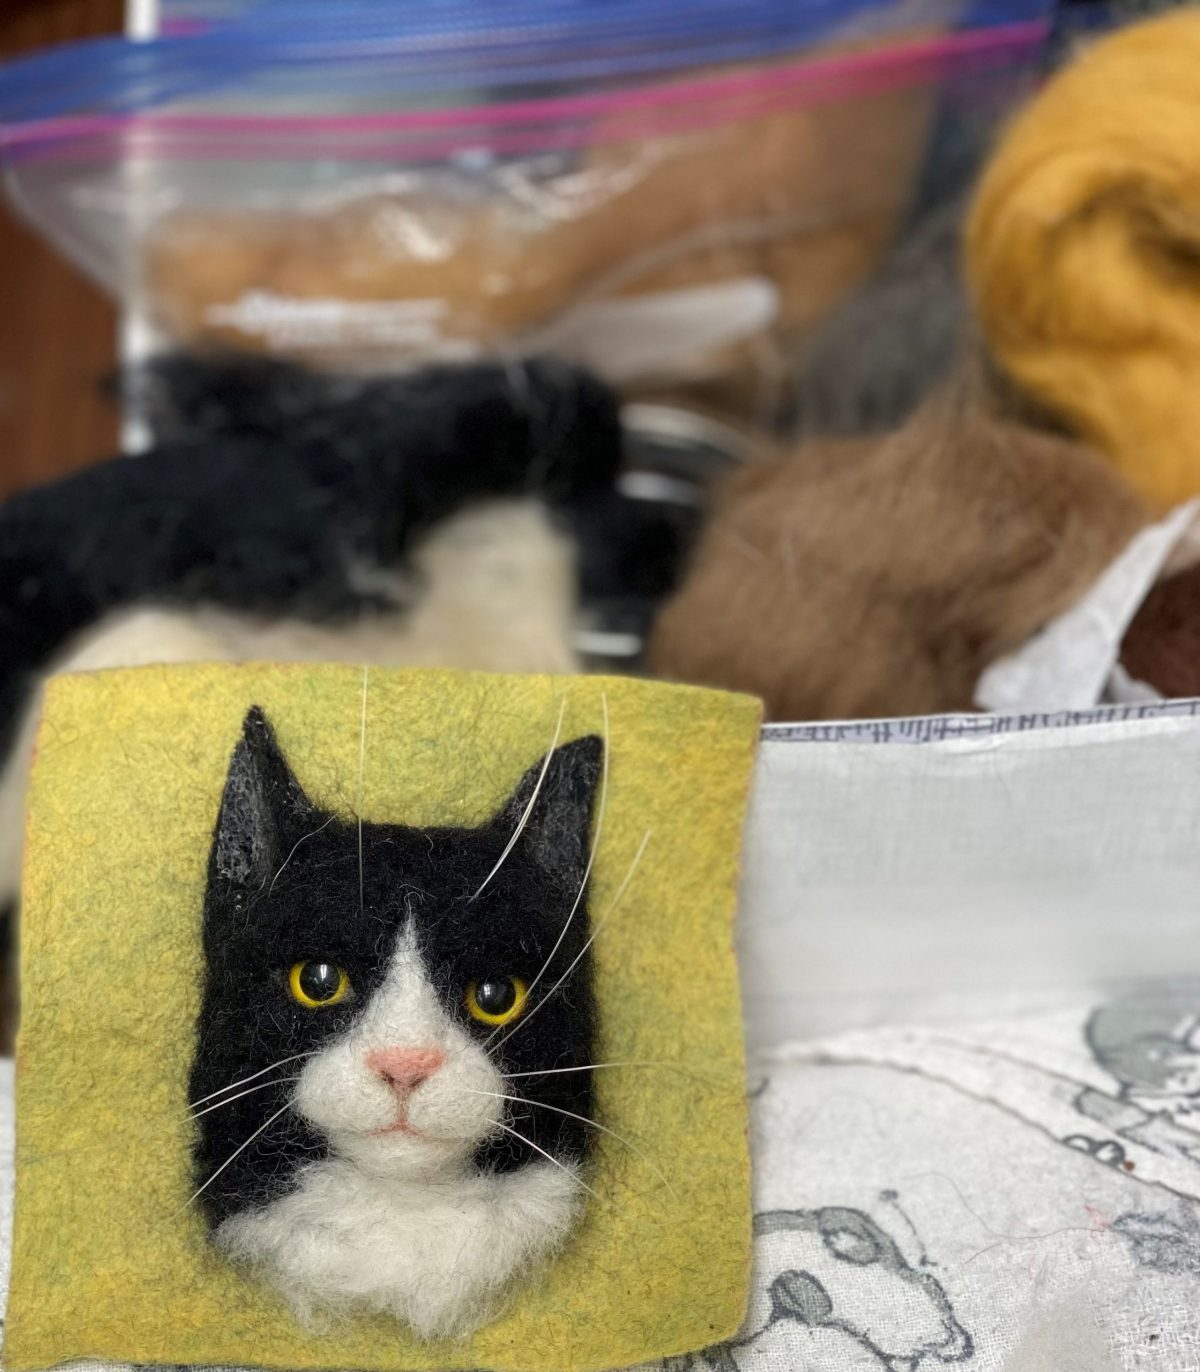 A 3D portrait of a black-and-white tuxedo cat head, created by needle felting, sits on a light green background. Behind the portrait are a variety of needle felting materials and fibers.